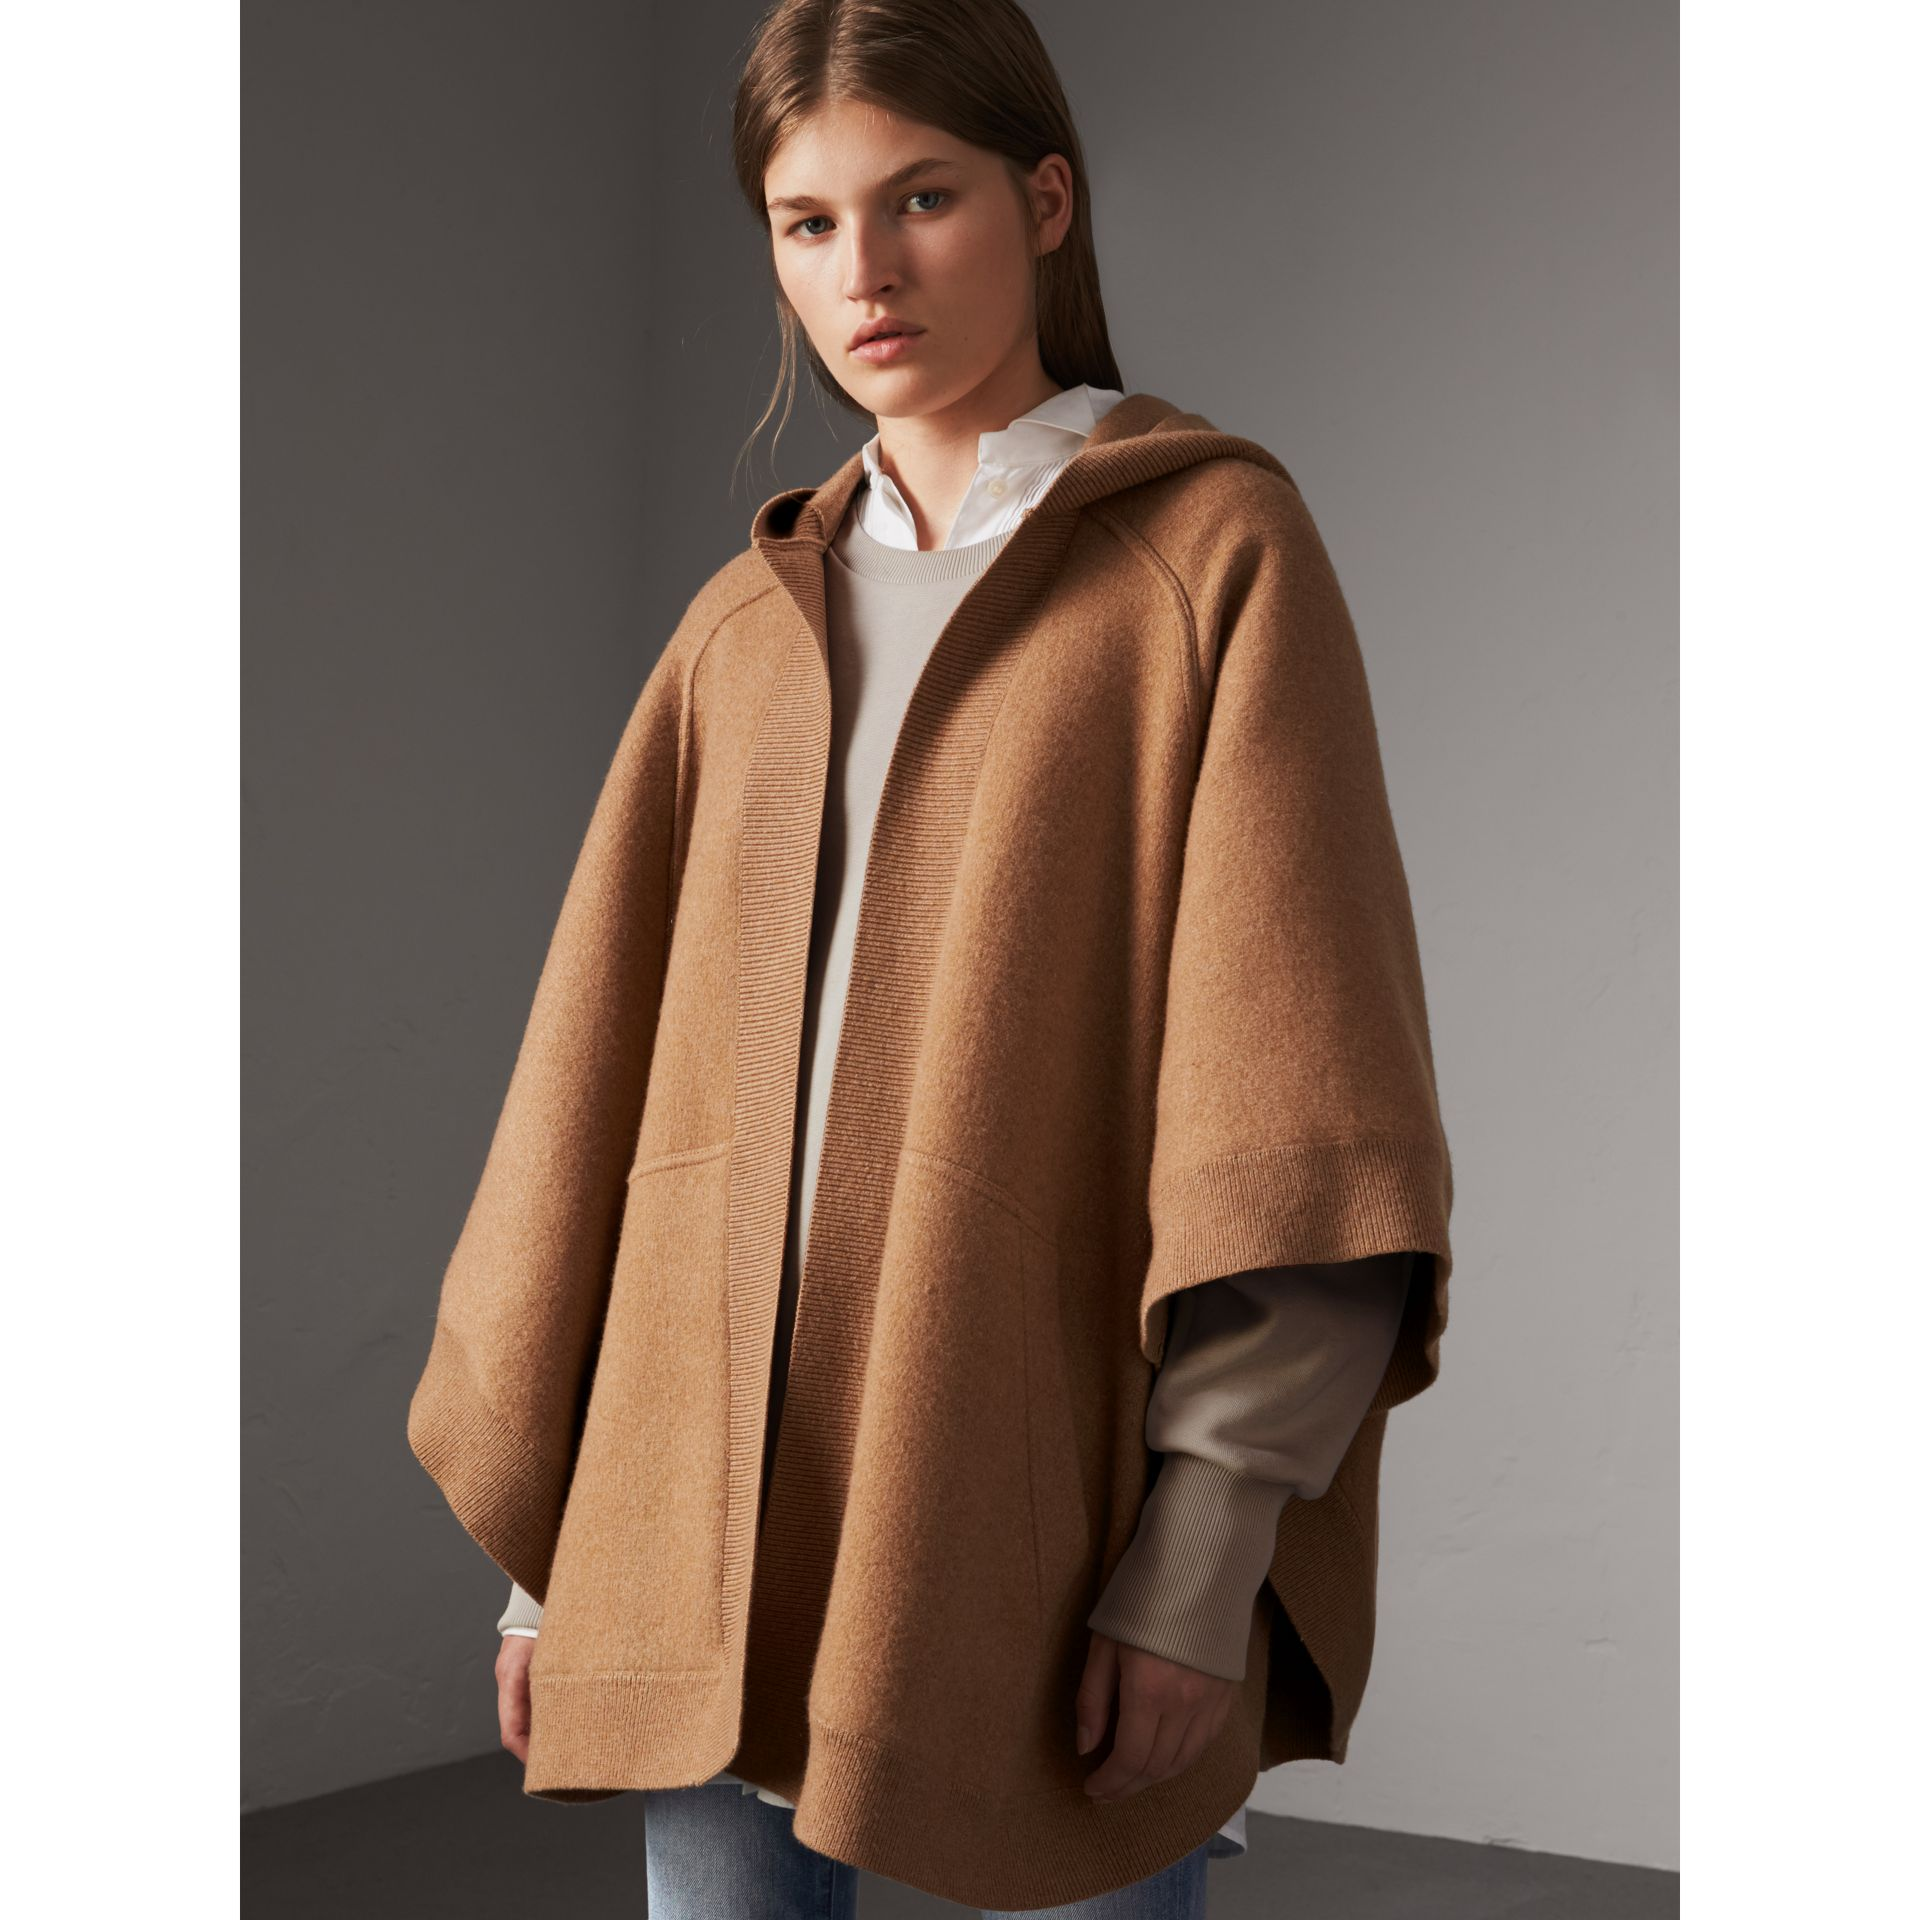 Wool Cashmere Blend Hooded Poncho in Camel - Women | Burberry United Kingdom - gallery image 5